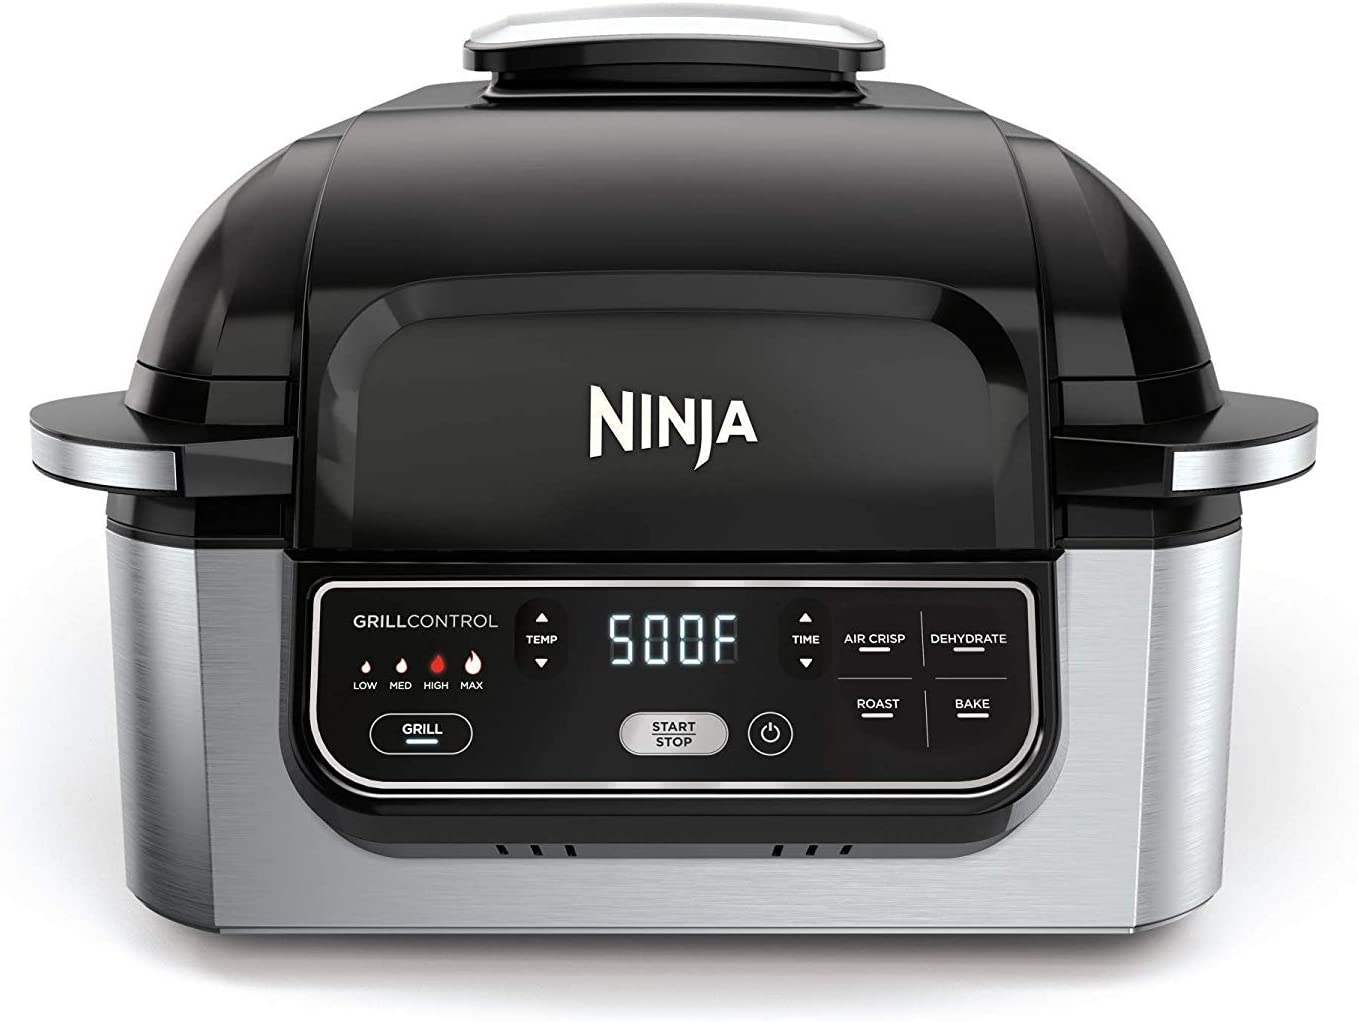 Ninja Foodi 5-in-1 Indoor Grill with Air Fry, Roast, Bake & Dehydrate (AG302), Black and Silver